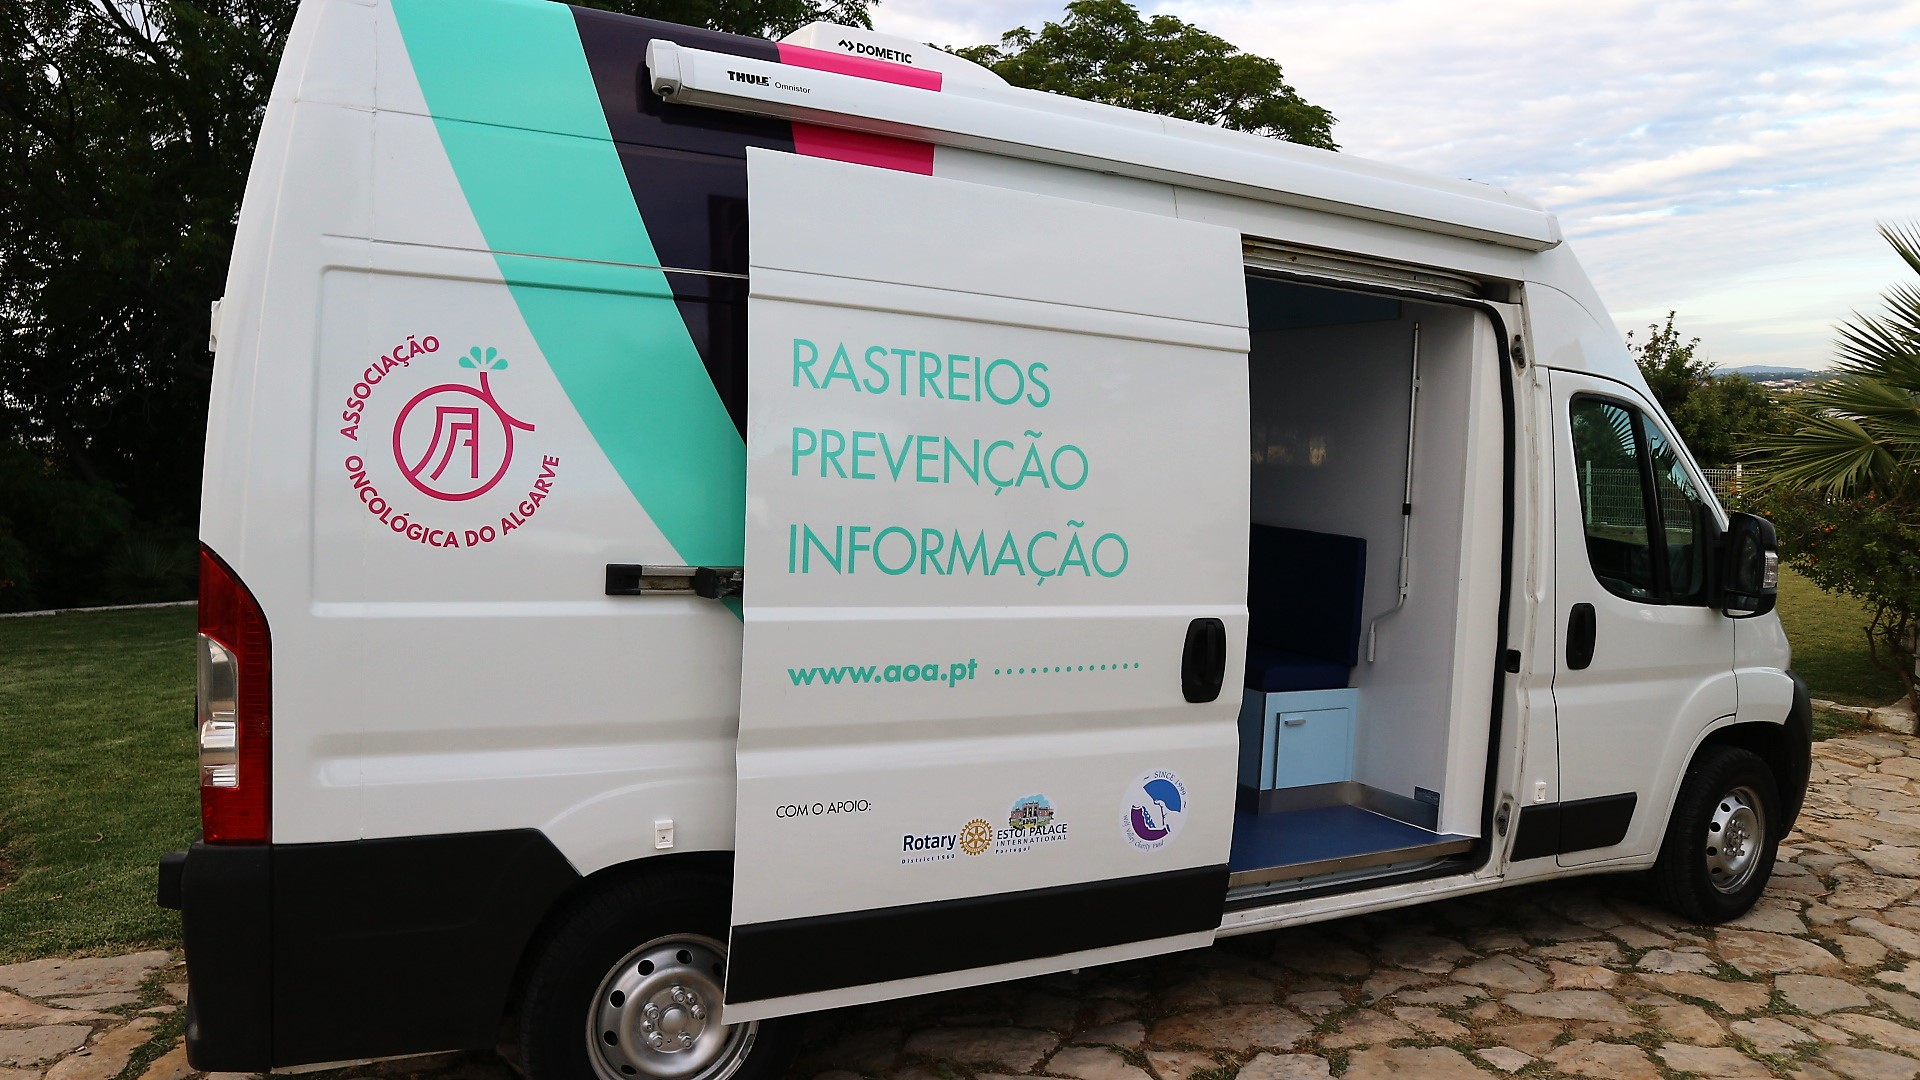 The new Mobile Health Unit